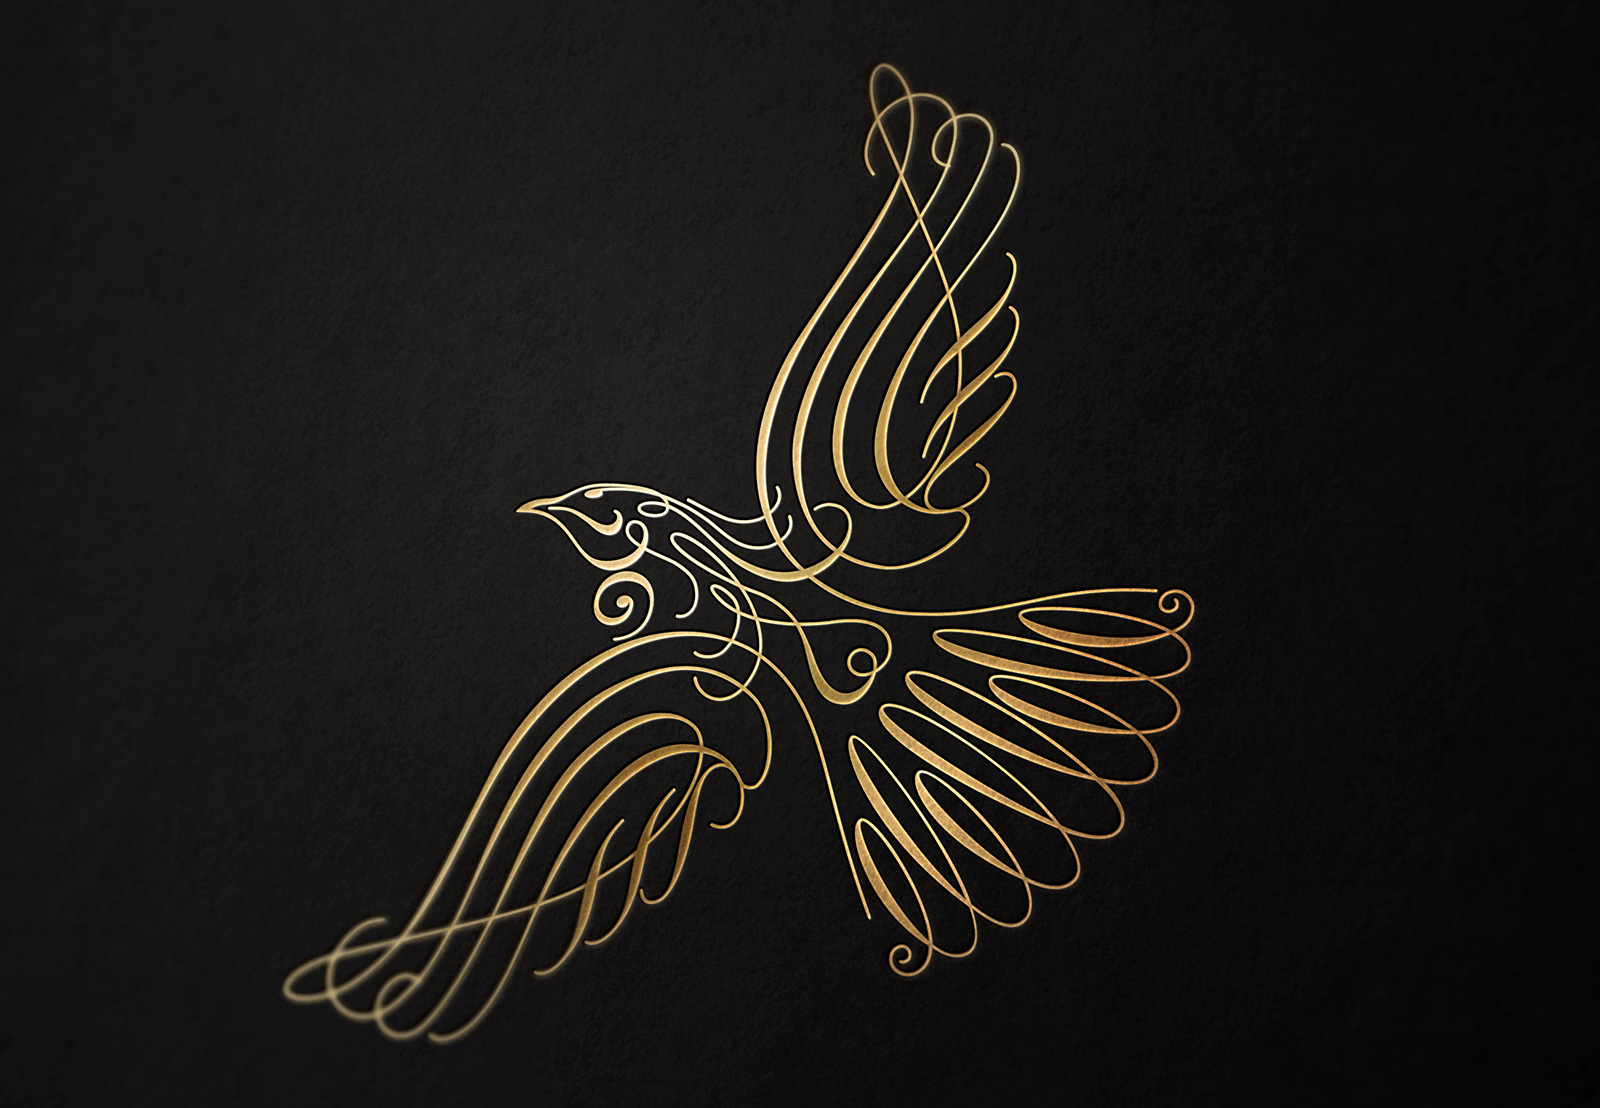 Waitui Golden Bay Manuka Honey Whiskey trademark. The rhythmic looped Waitui calligraphic logo illustration of a native tui in flight, matched embossed metallic gold on a black card background. graphic design studio, design consultancy, creative design, graphic design, web design, print design, Christchurch, New Zealand, logo design, brand design, logos, corporate identity, originating company, originating product names right, packaging, Illustration, advertising, creative design